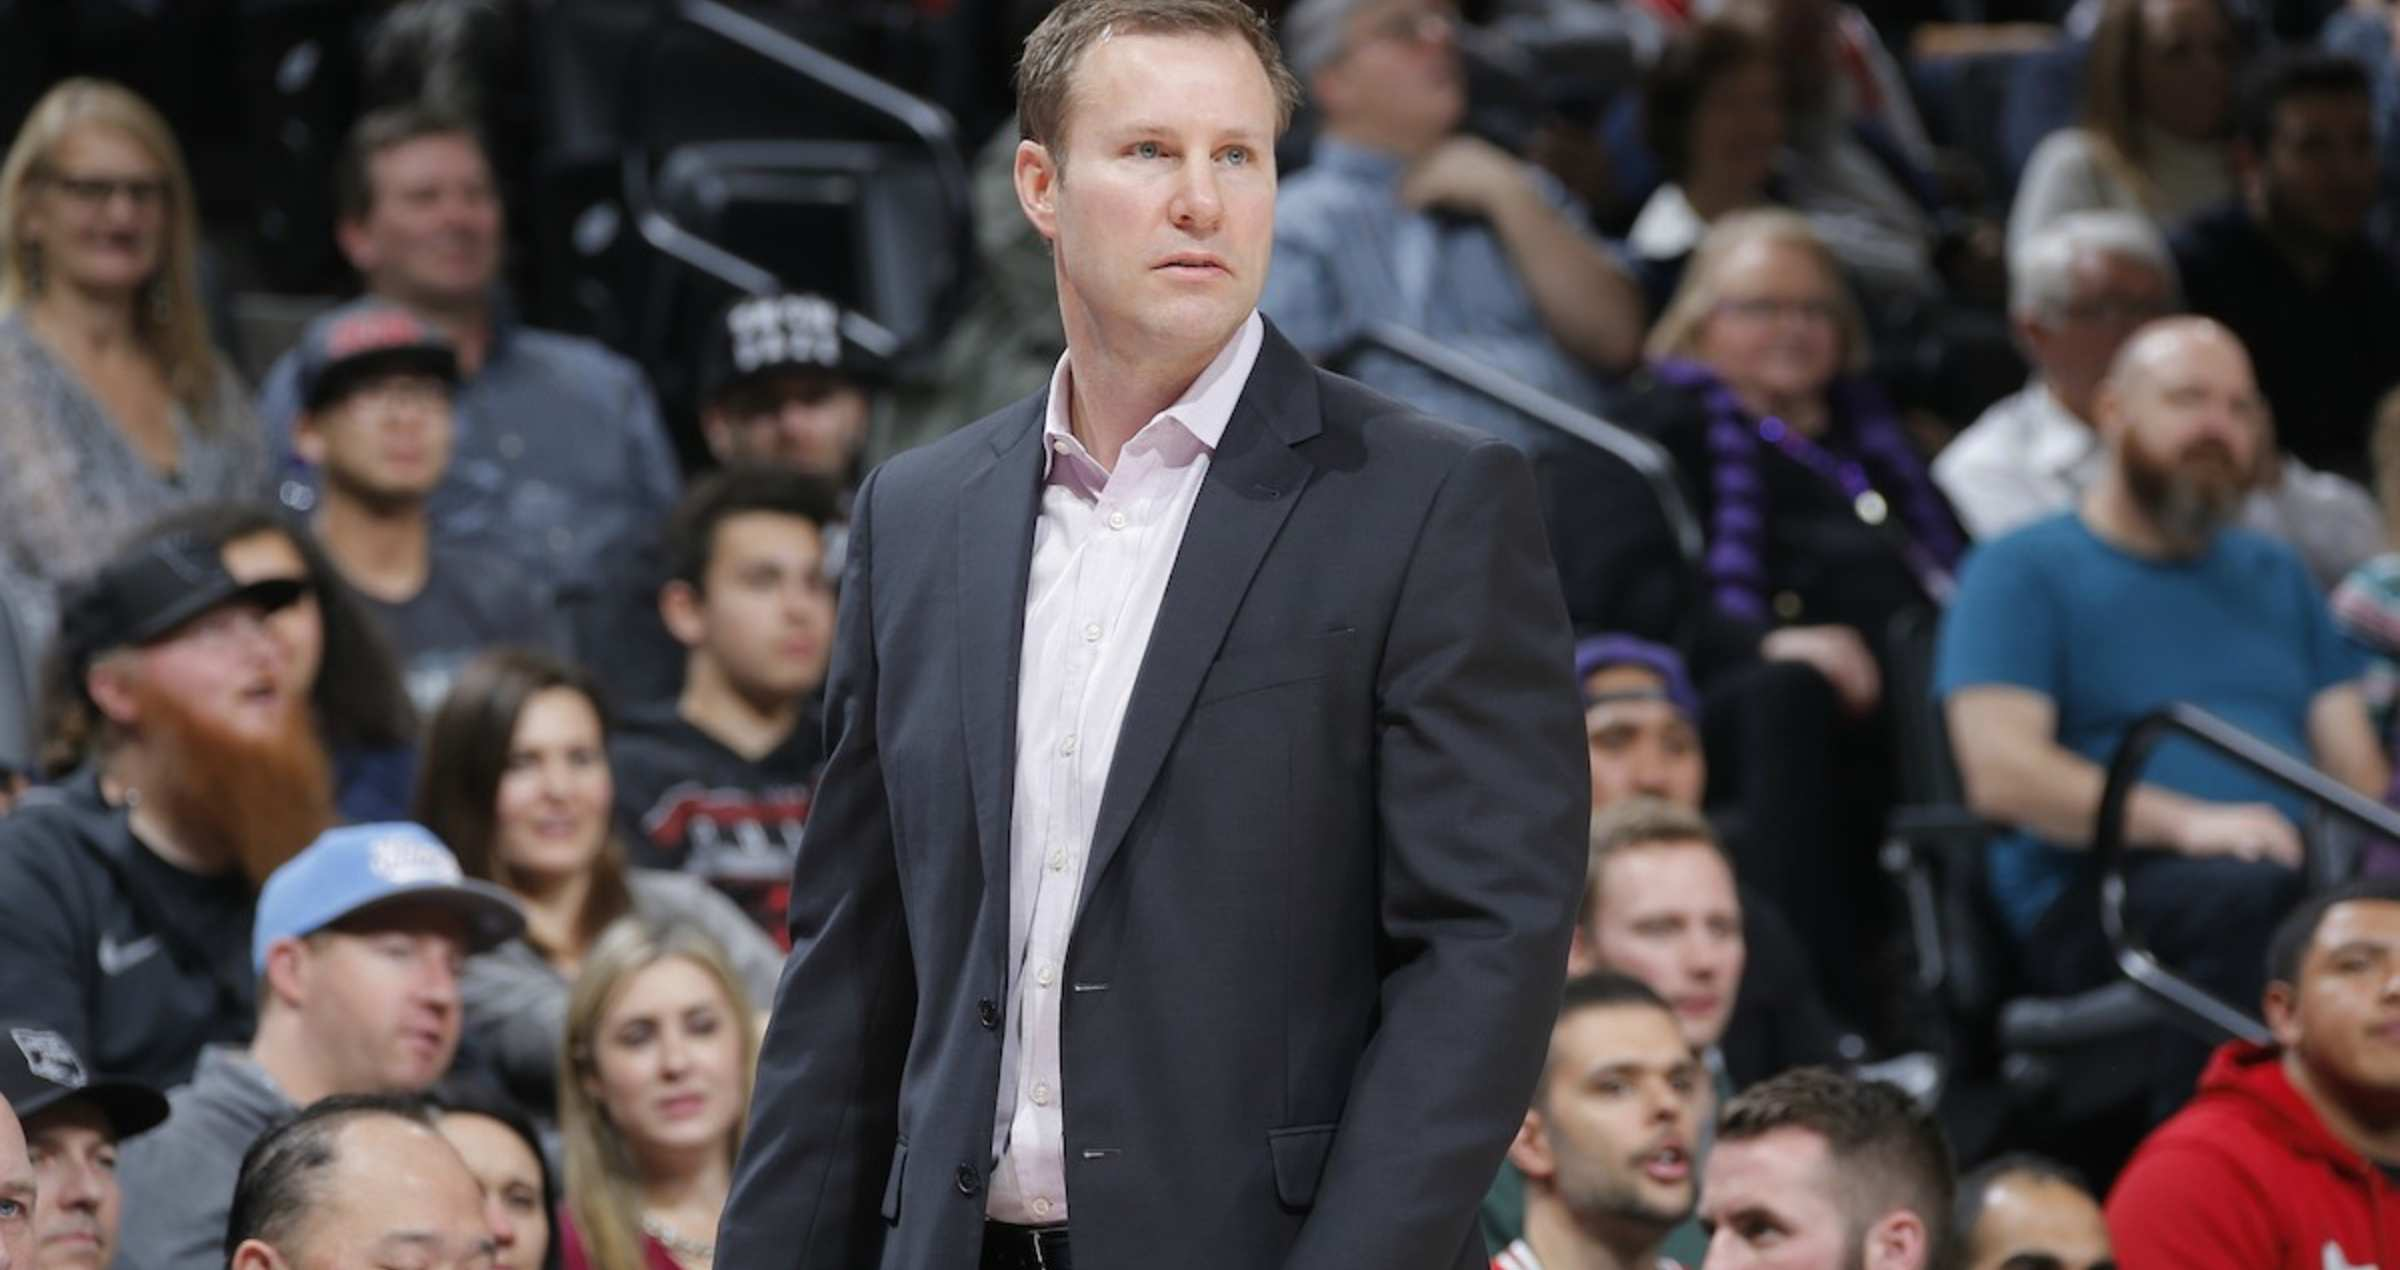 Coach Hoiberg walks the sidelines during the Bulls vs. Kings game on Monday night.